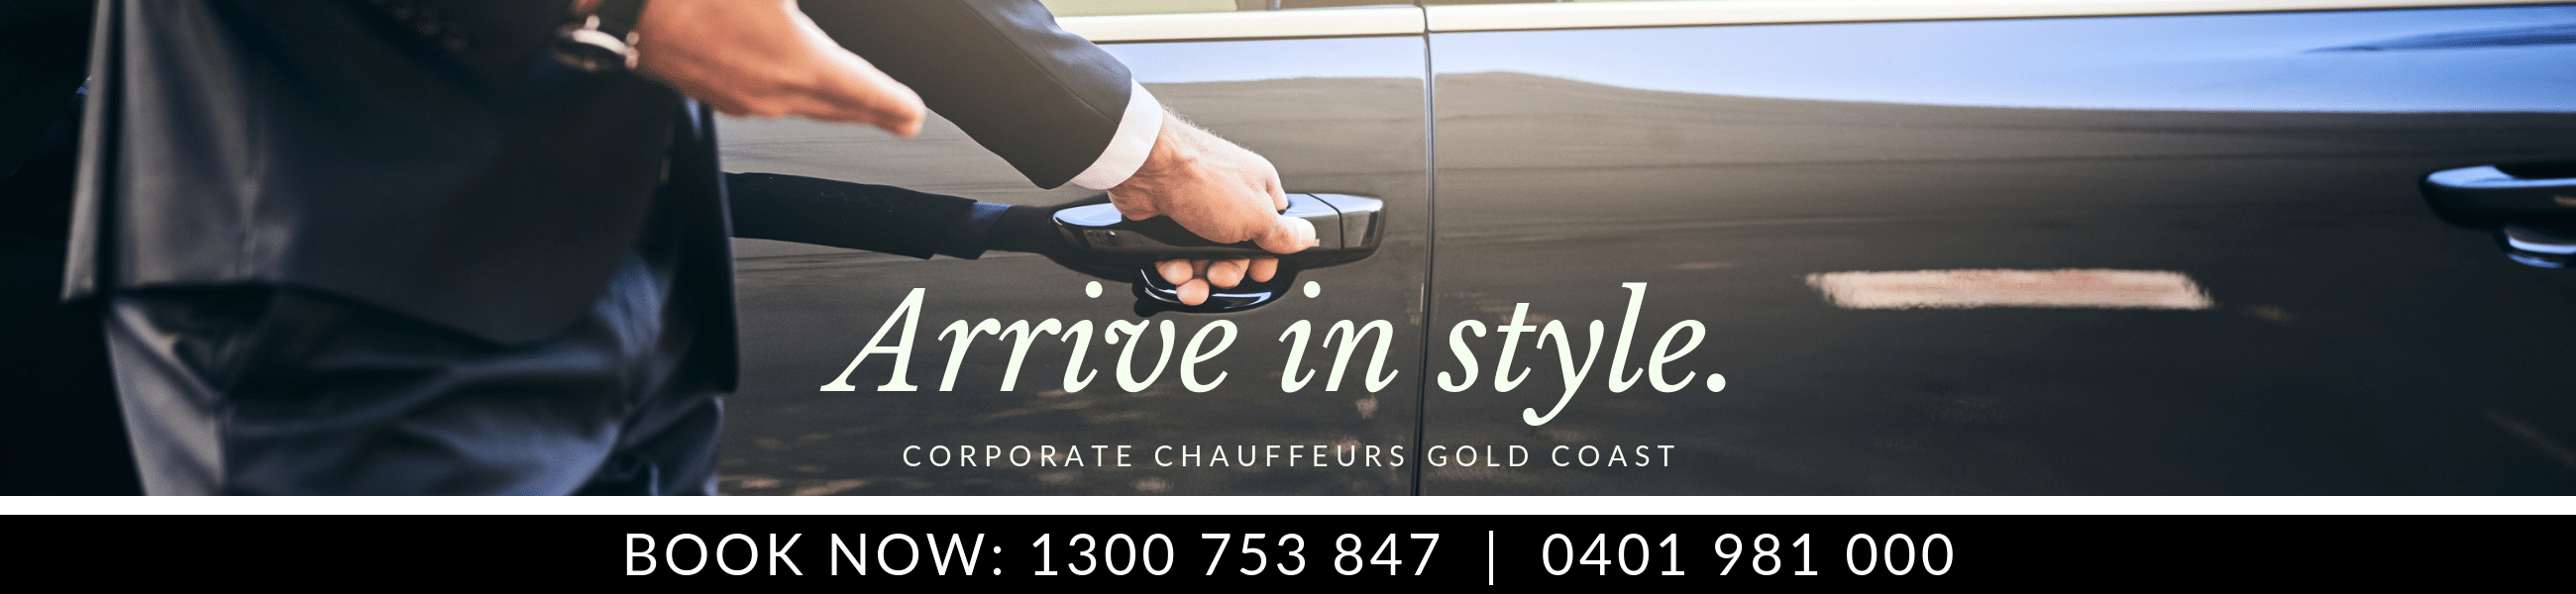 Corporate Chauffeurs Gold Coast - Arrive in Style